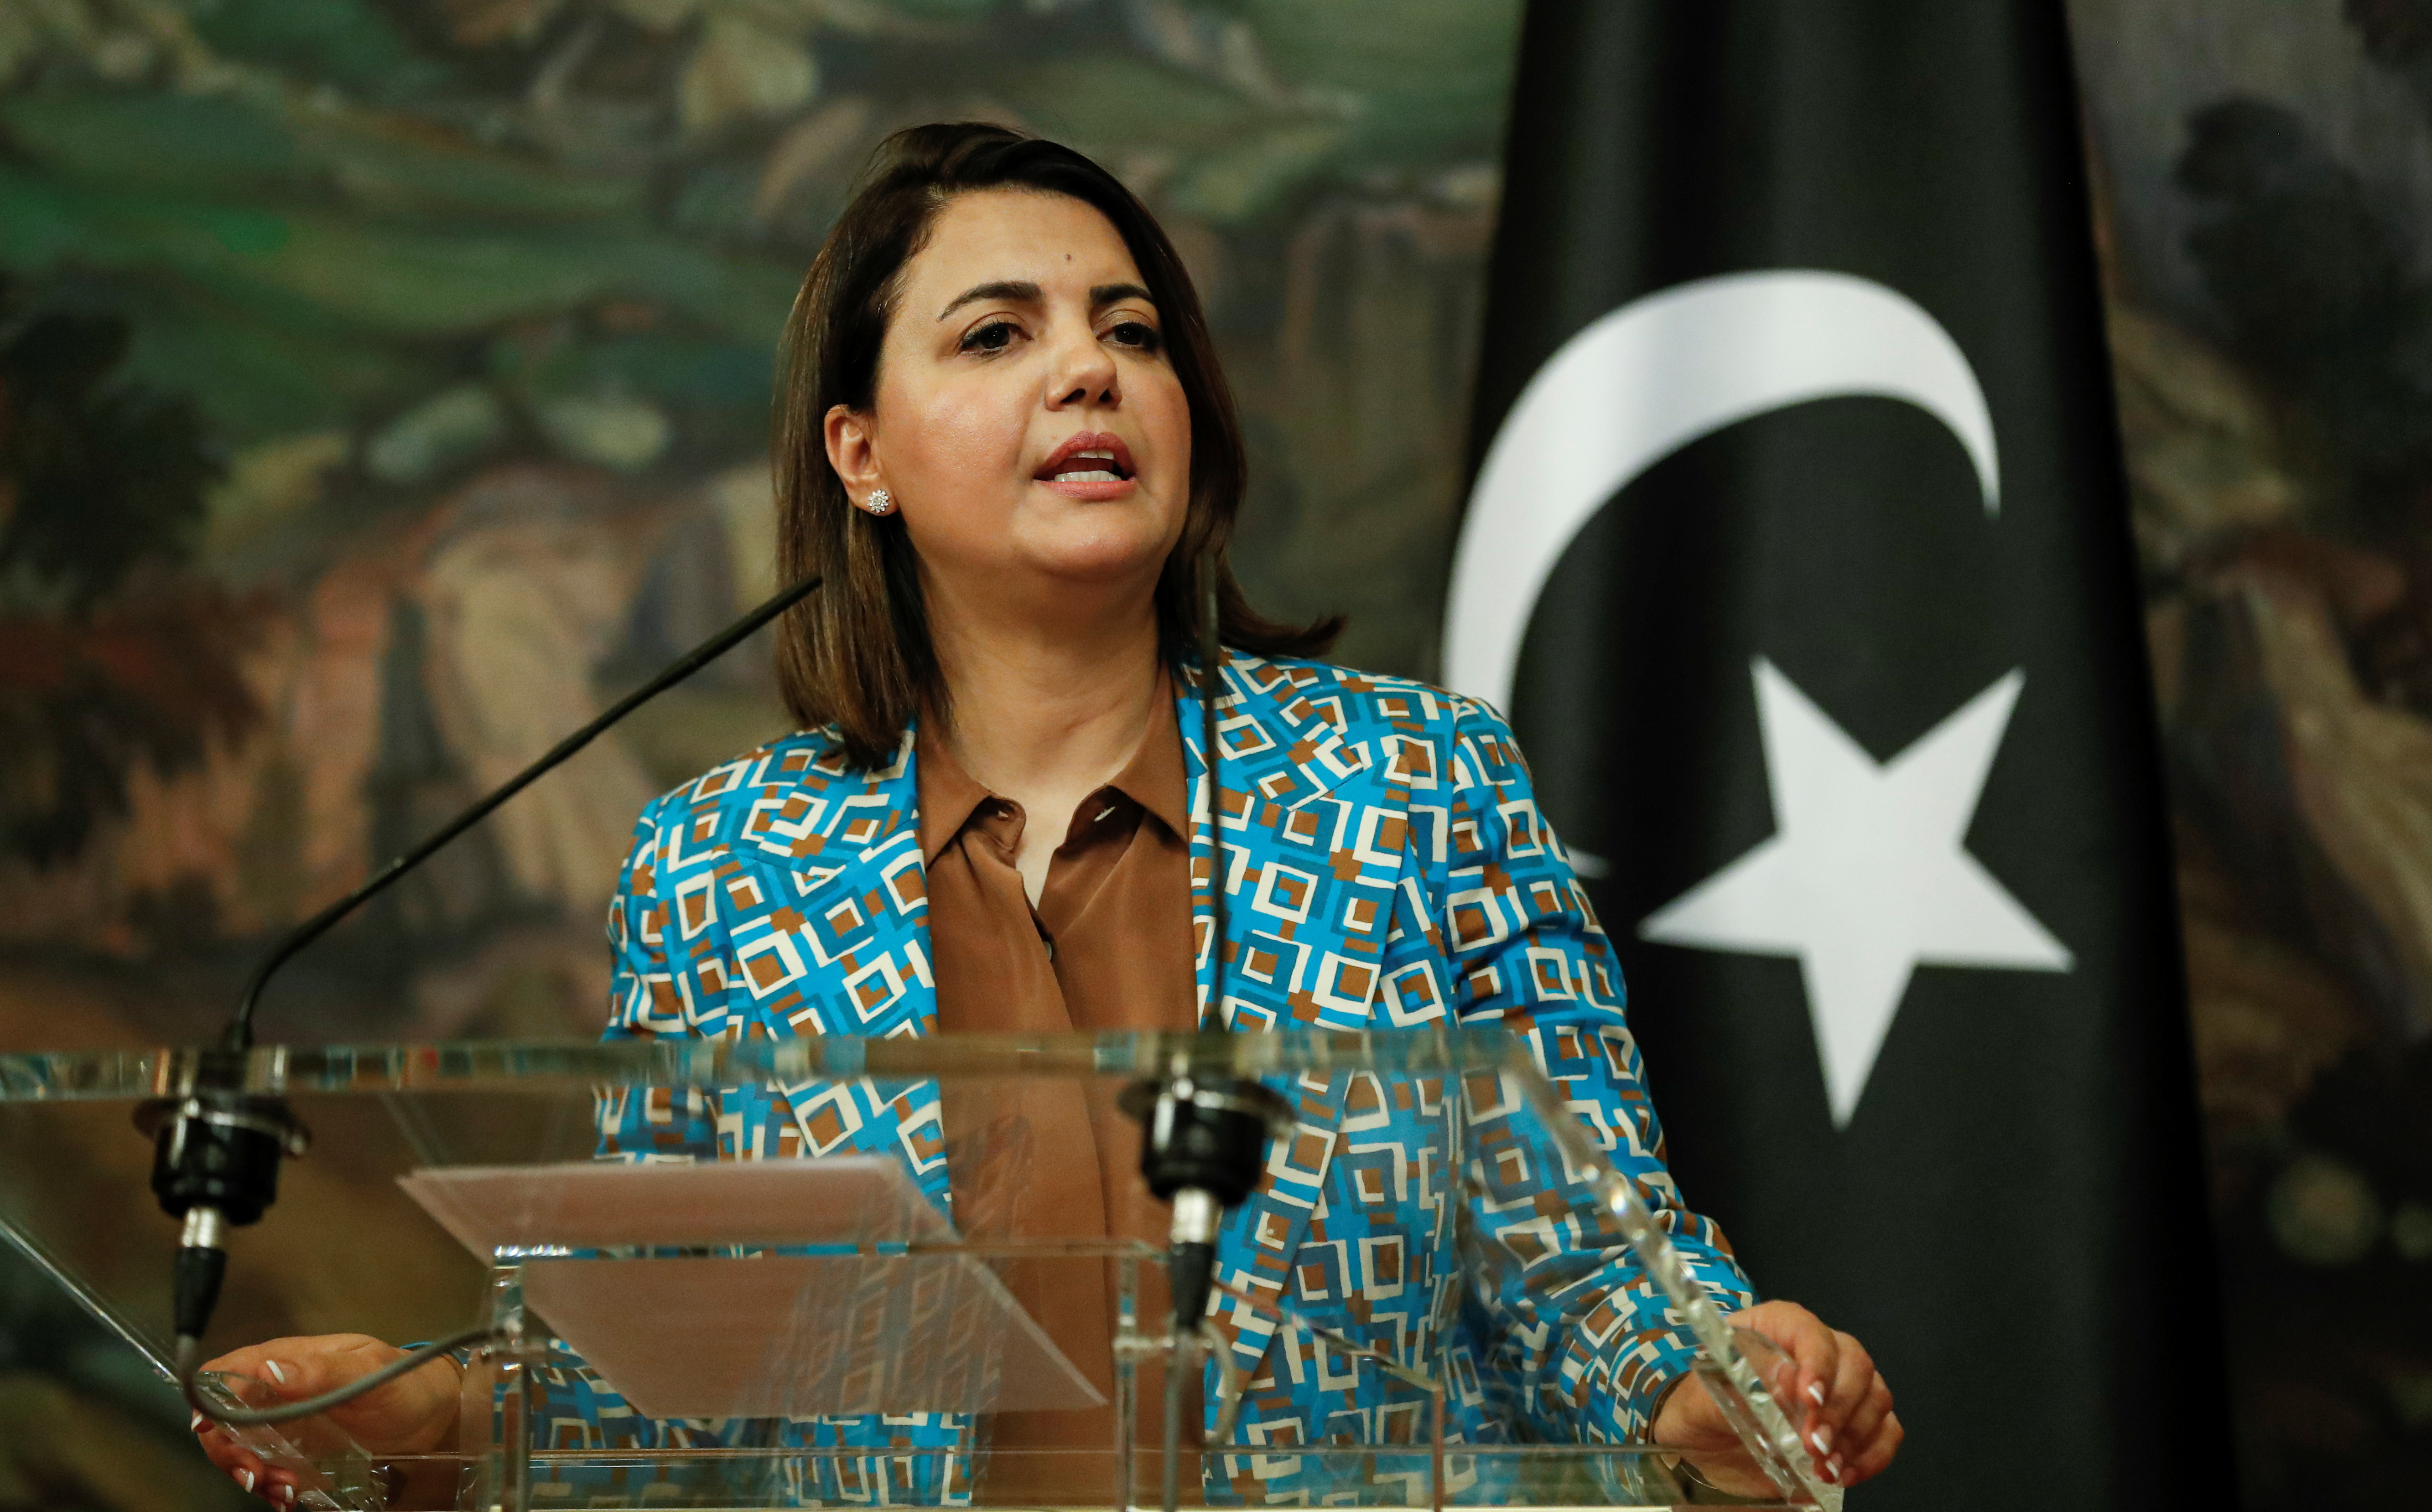 Libyan Foreign Minister Najla Mangoush attends a news conference following a meeting with Russian Foreign Minister Sergei Lavrov in Moscow, Russia August 19, 2021. Maxim Shipenkov/Pool via REUTERS